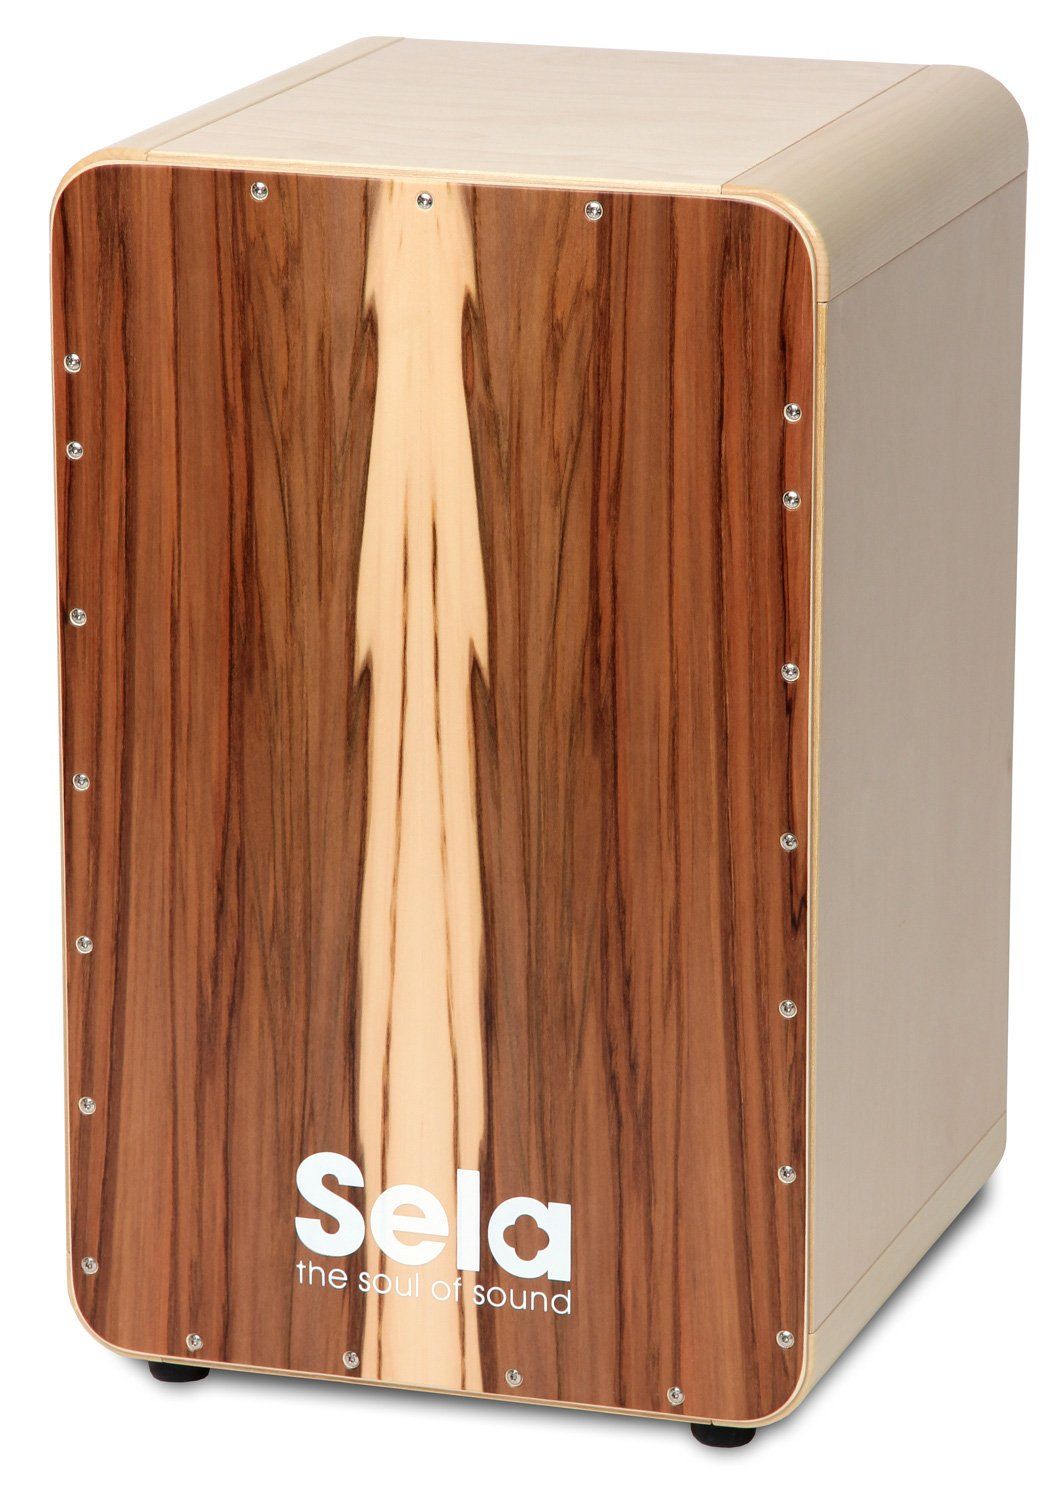 Sela SE 002A CaSela Satin Nut Professional Cajon with Removable Snare System and Special Clap Corners